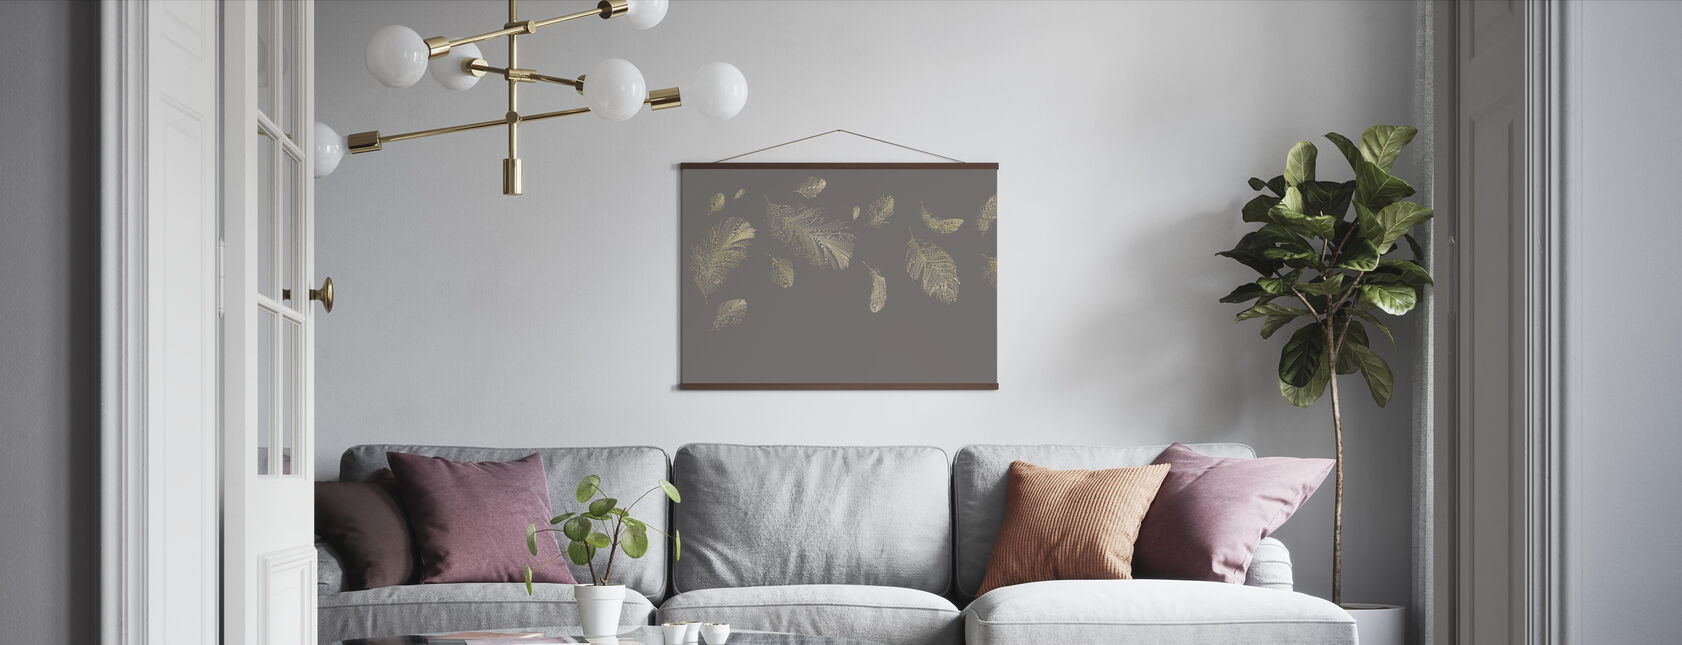 Flying Feathers - Grey - Poster - Living Room